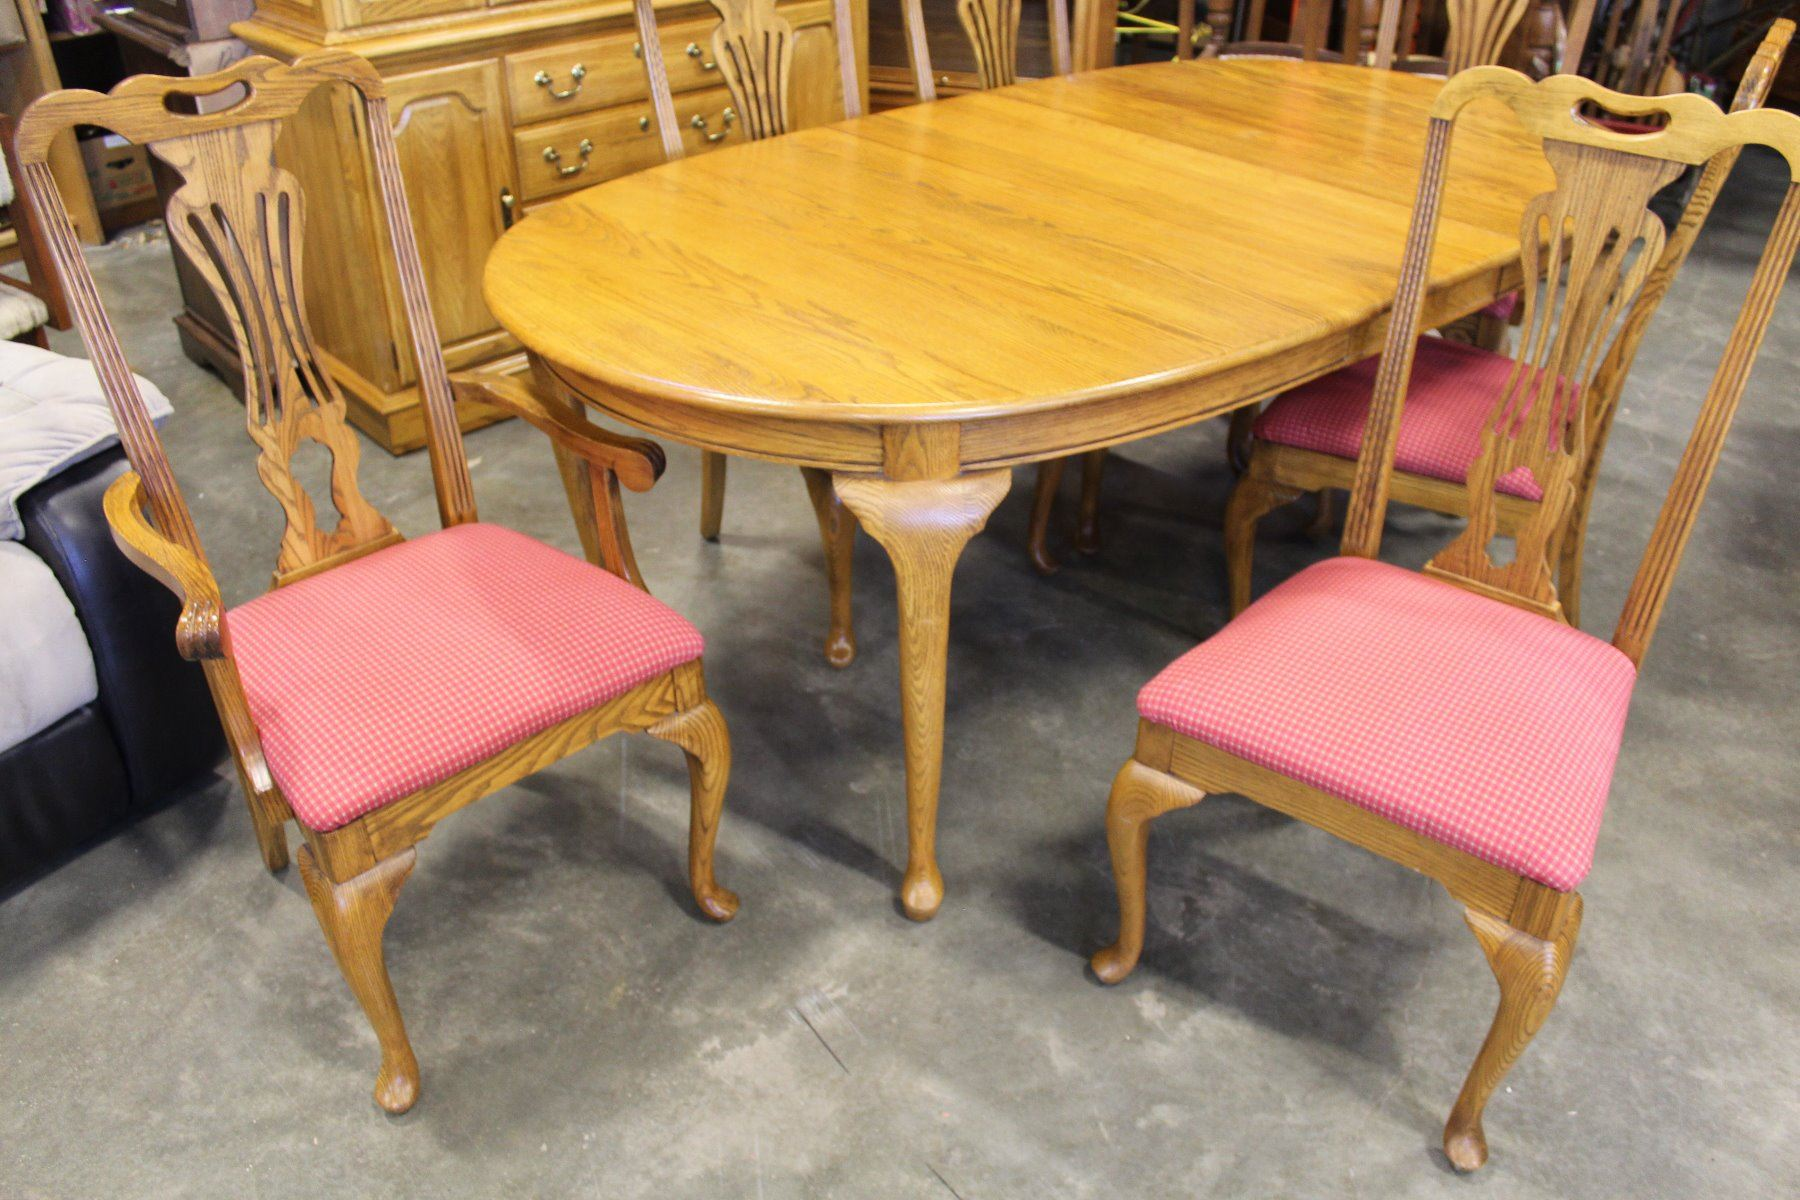 Image 2 JAMESTOWN STERLING SOLID OAK DINING TABLE W LEAFS 6 CHAIRS INCLUDING